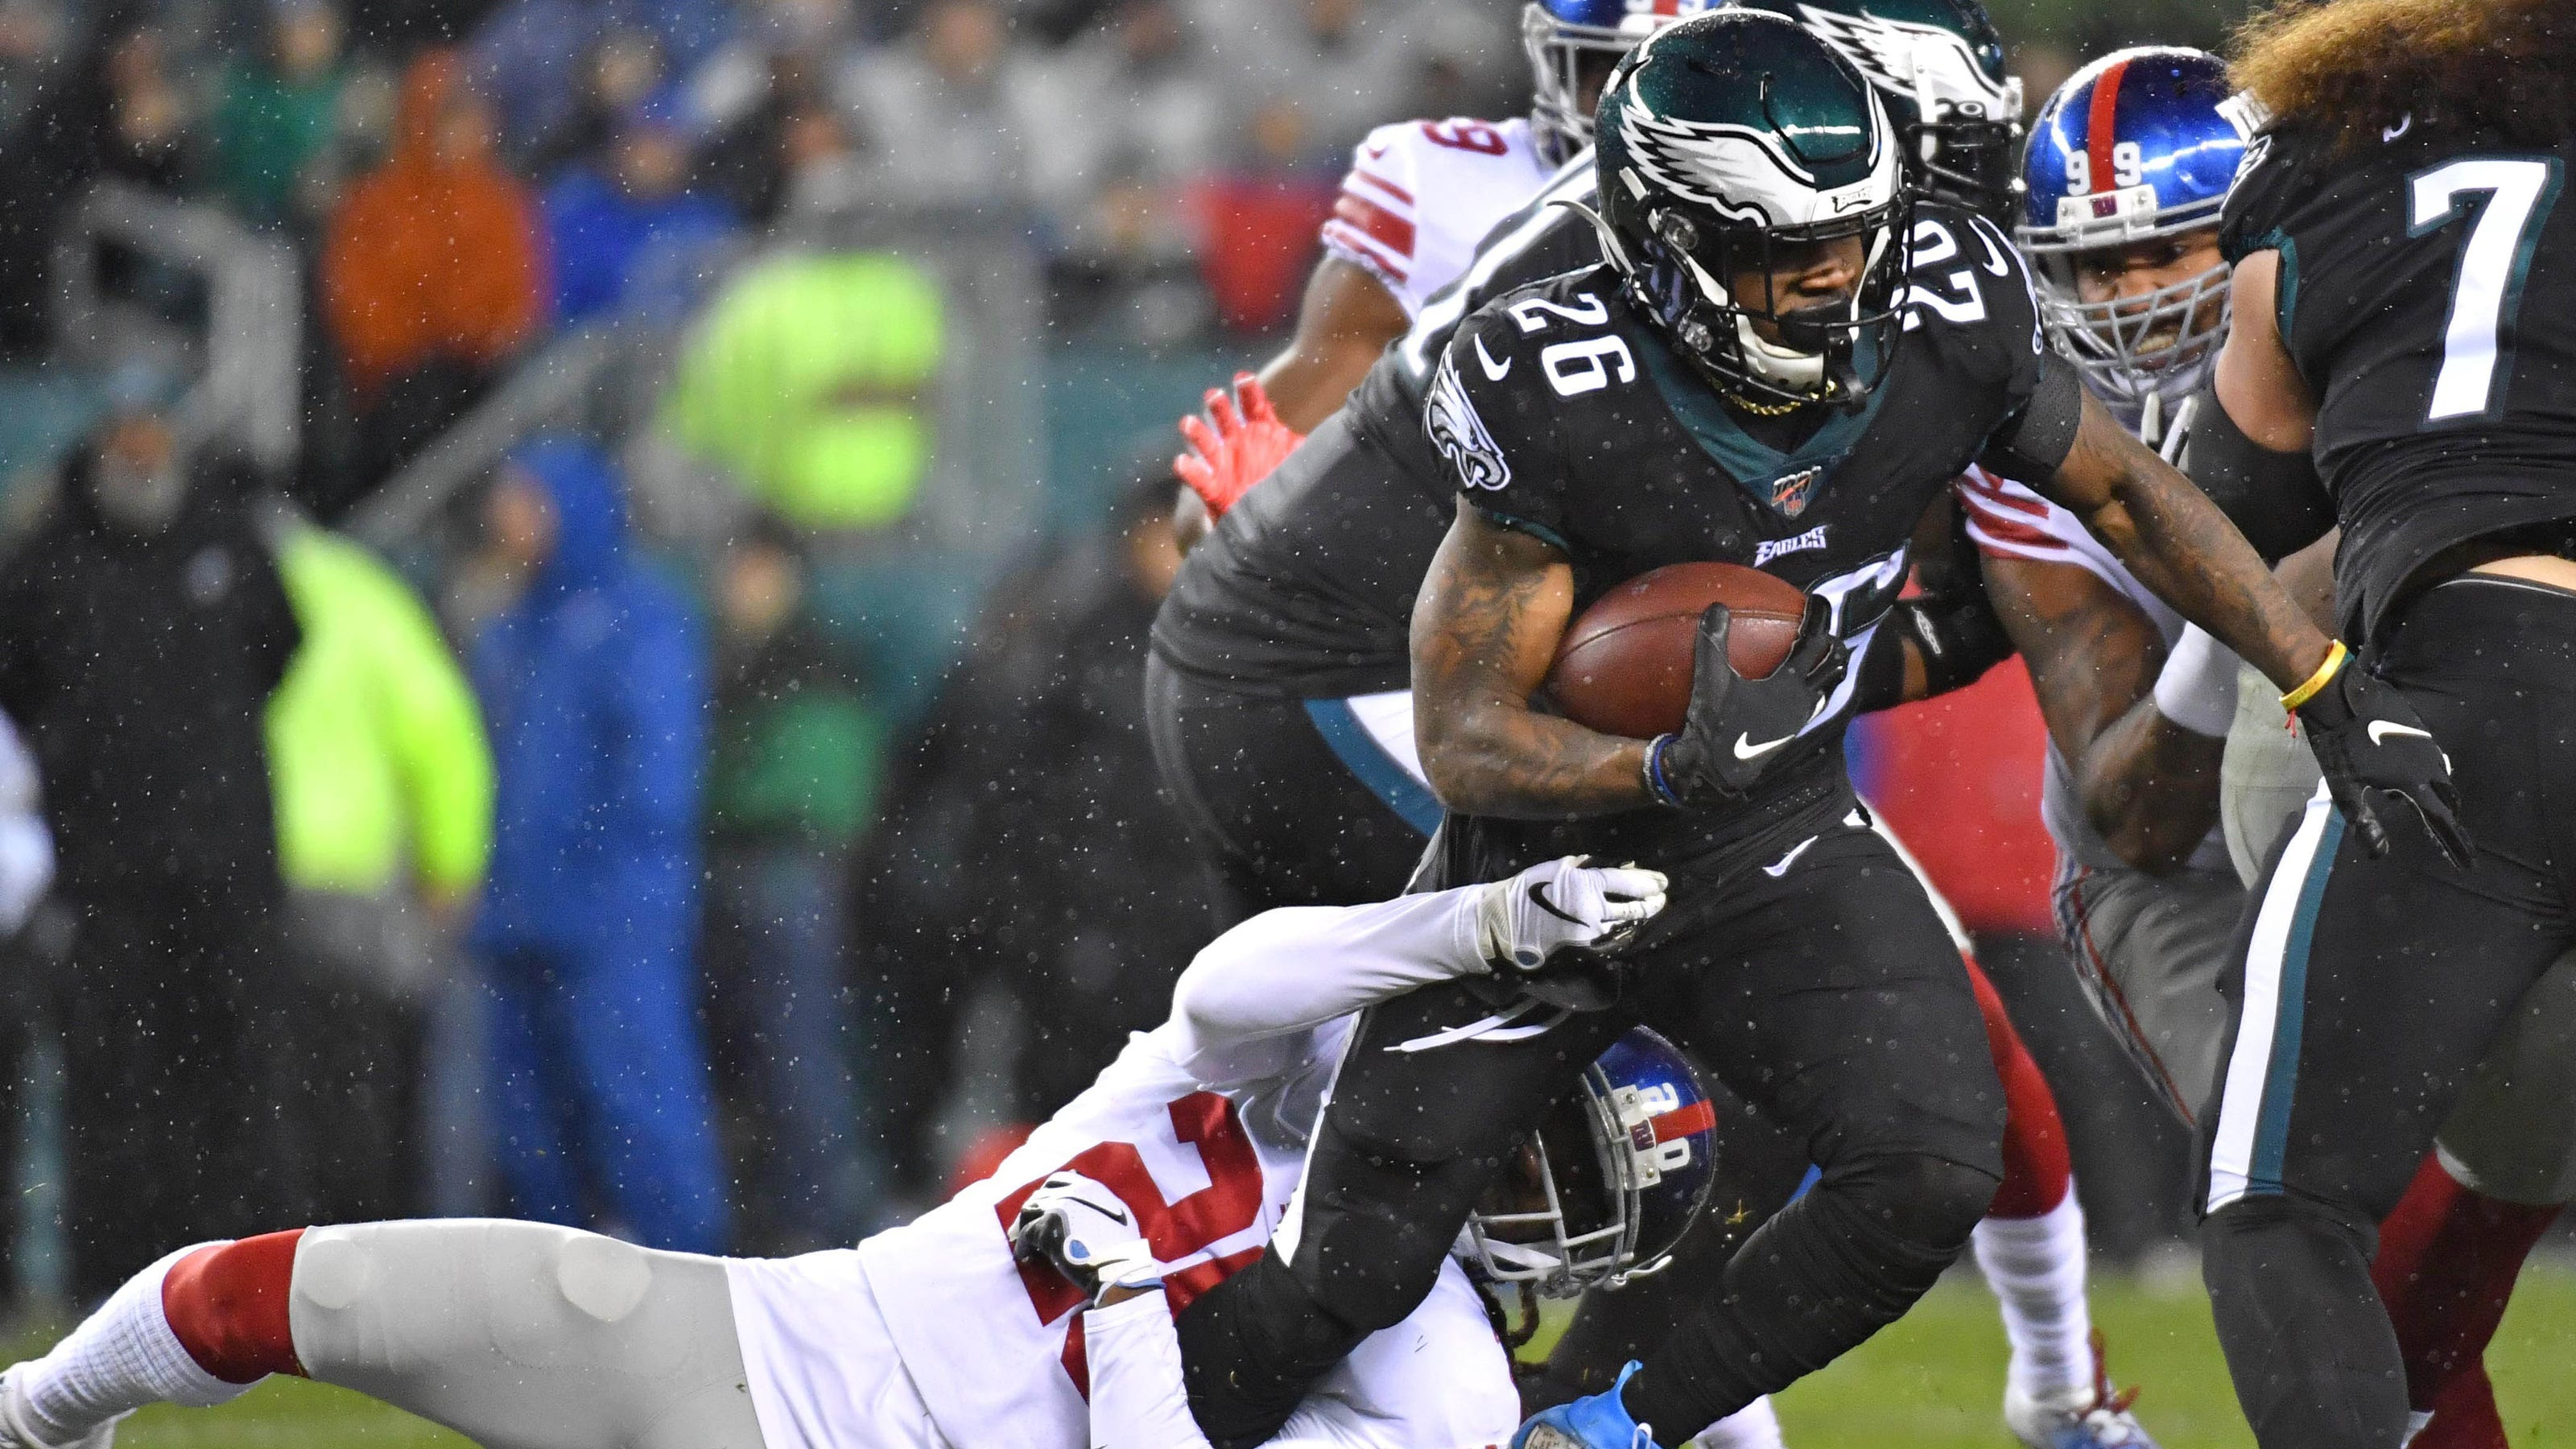 Eagles prevail in OT, move into first-place tie atop NFC East